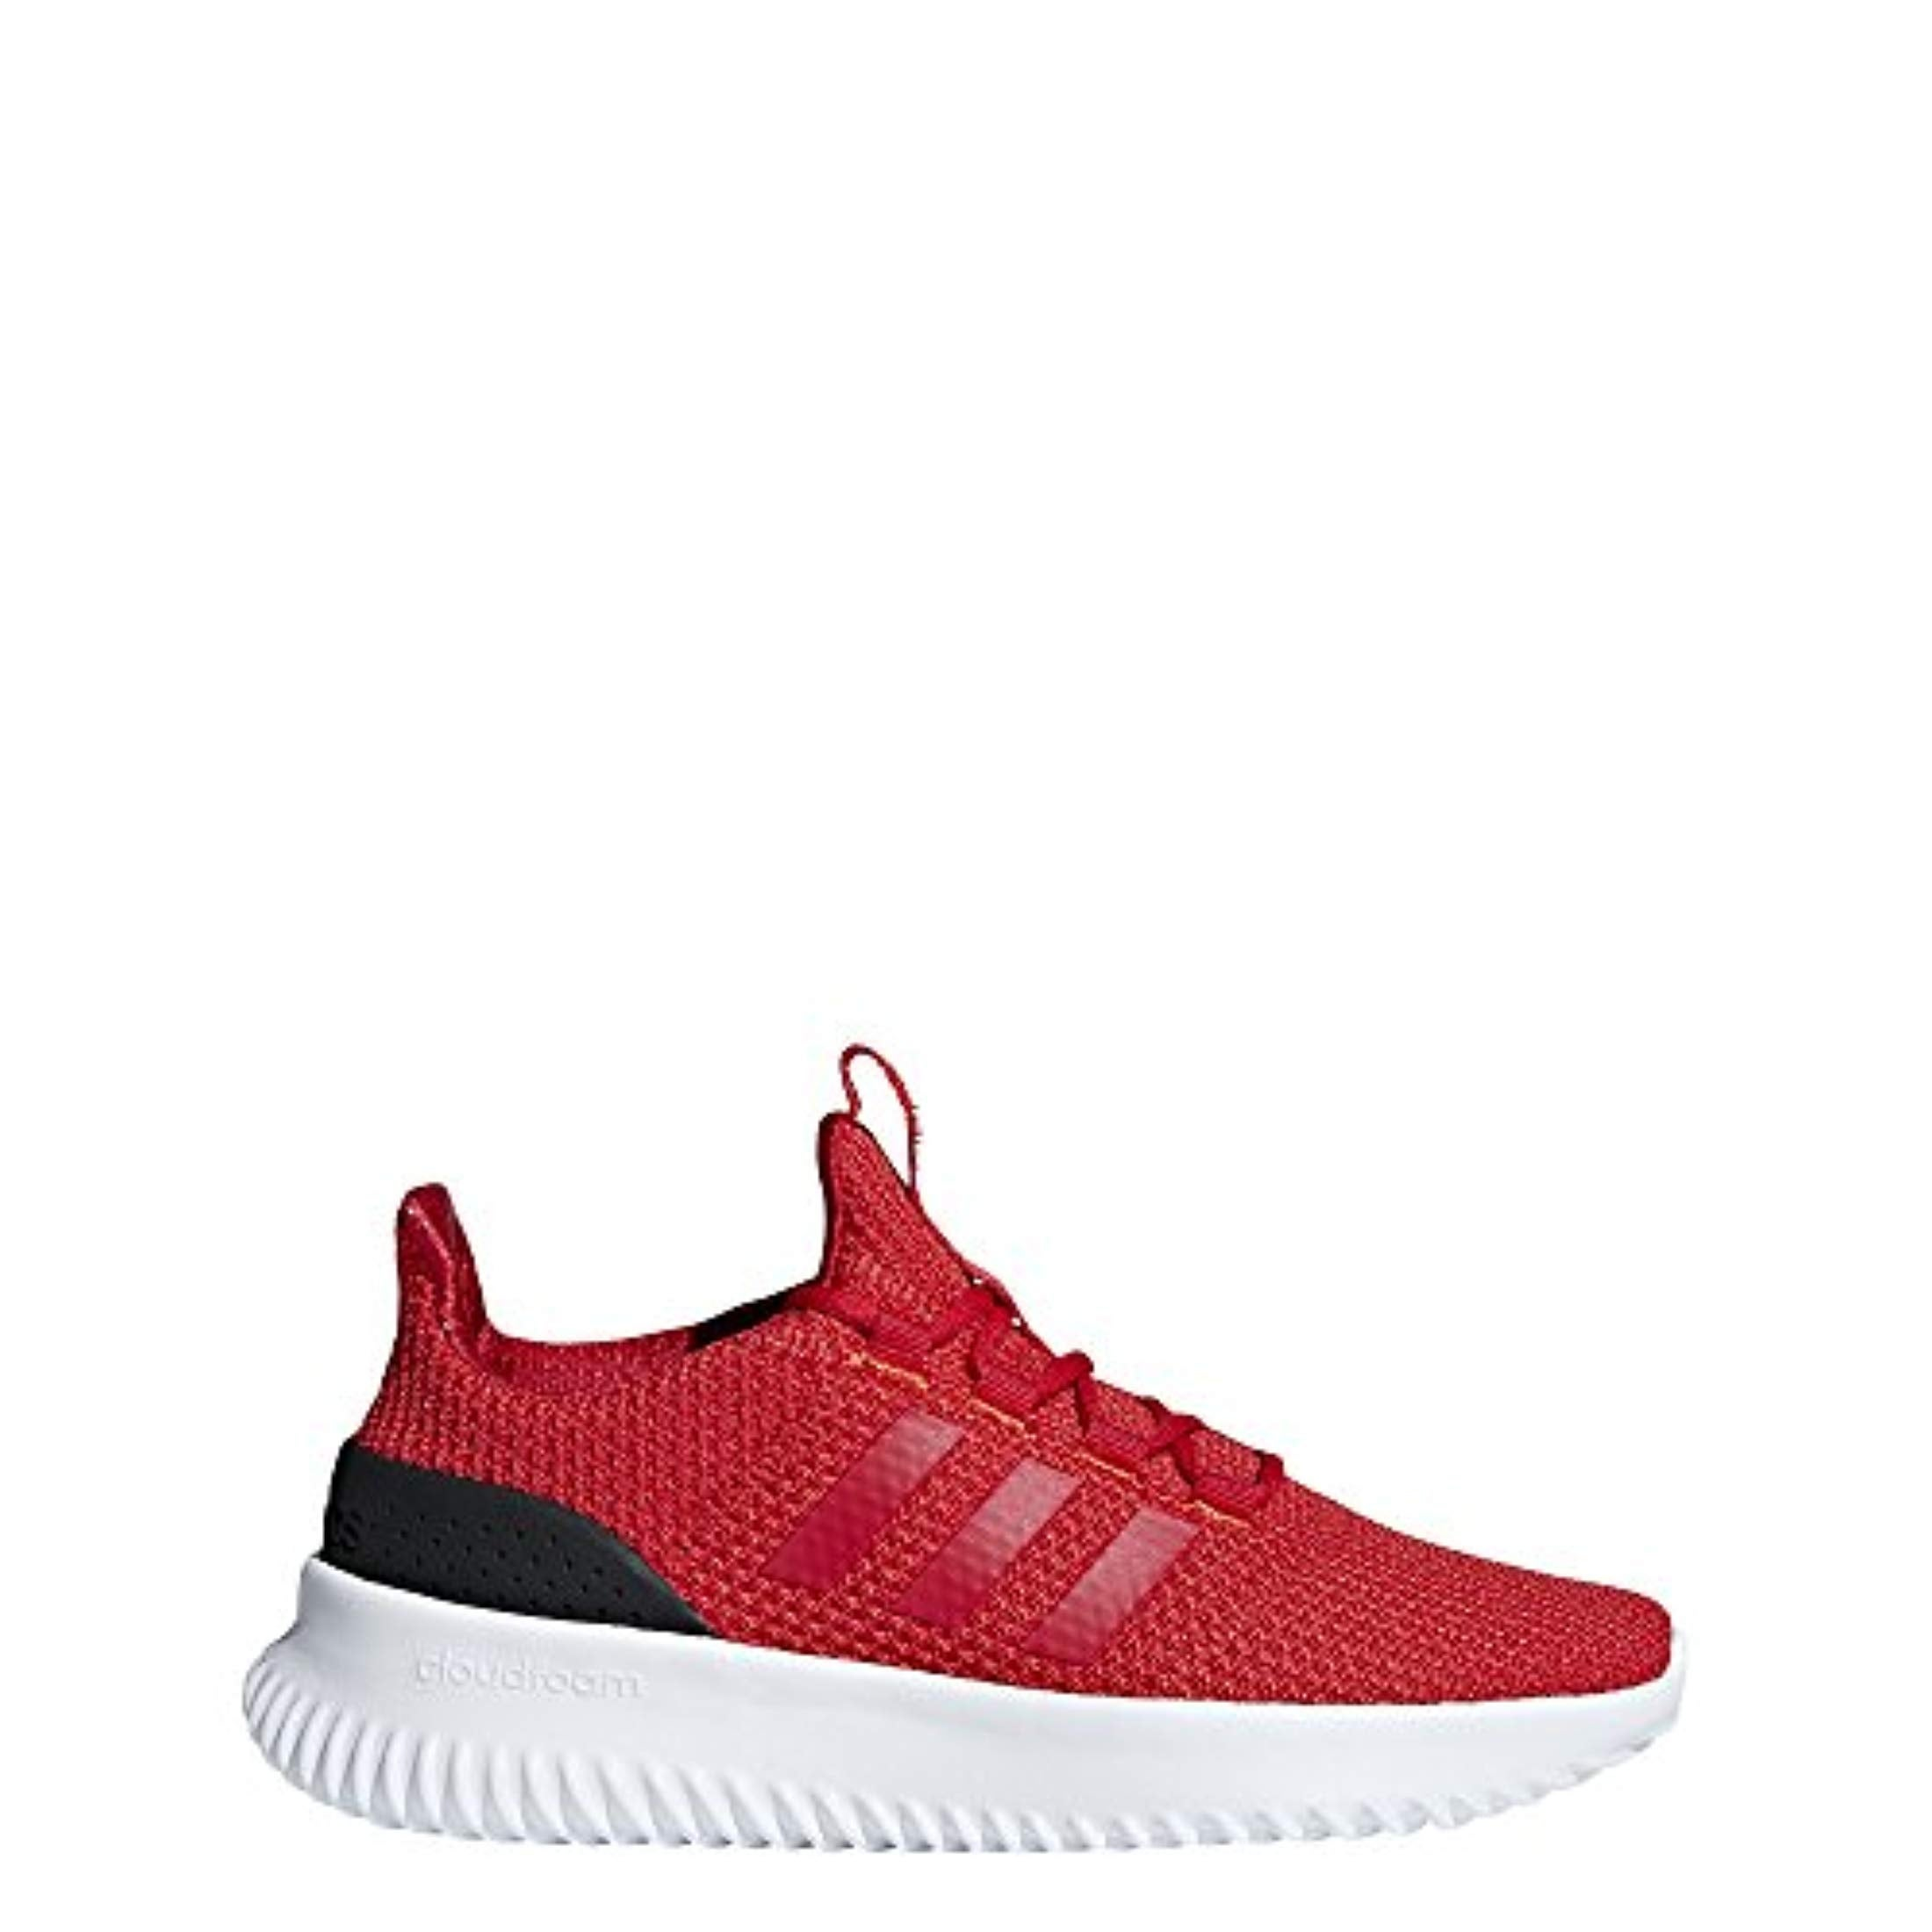 8107a3795e3d Adidas Girls  Shoes